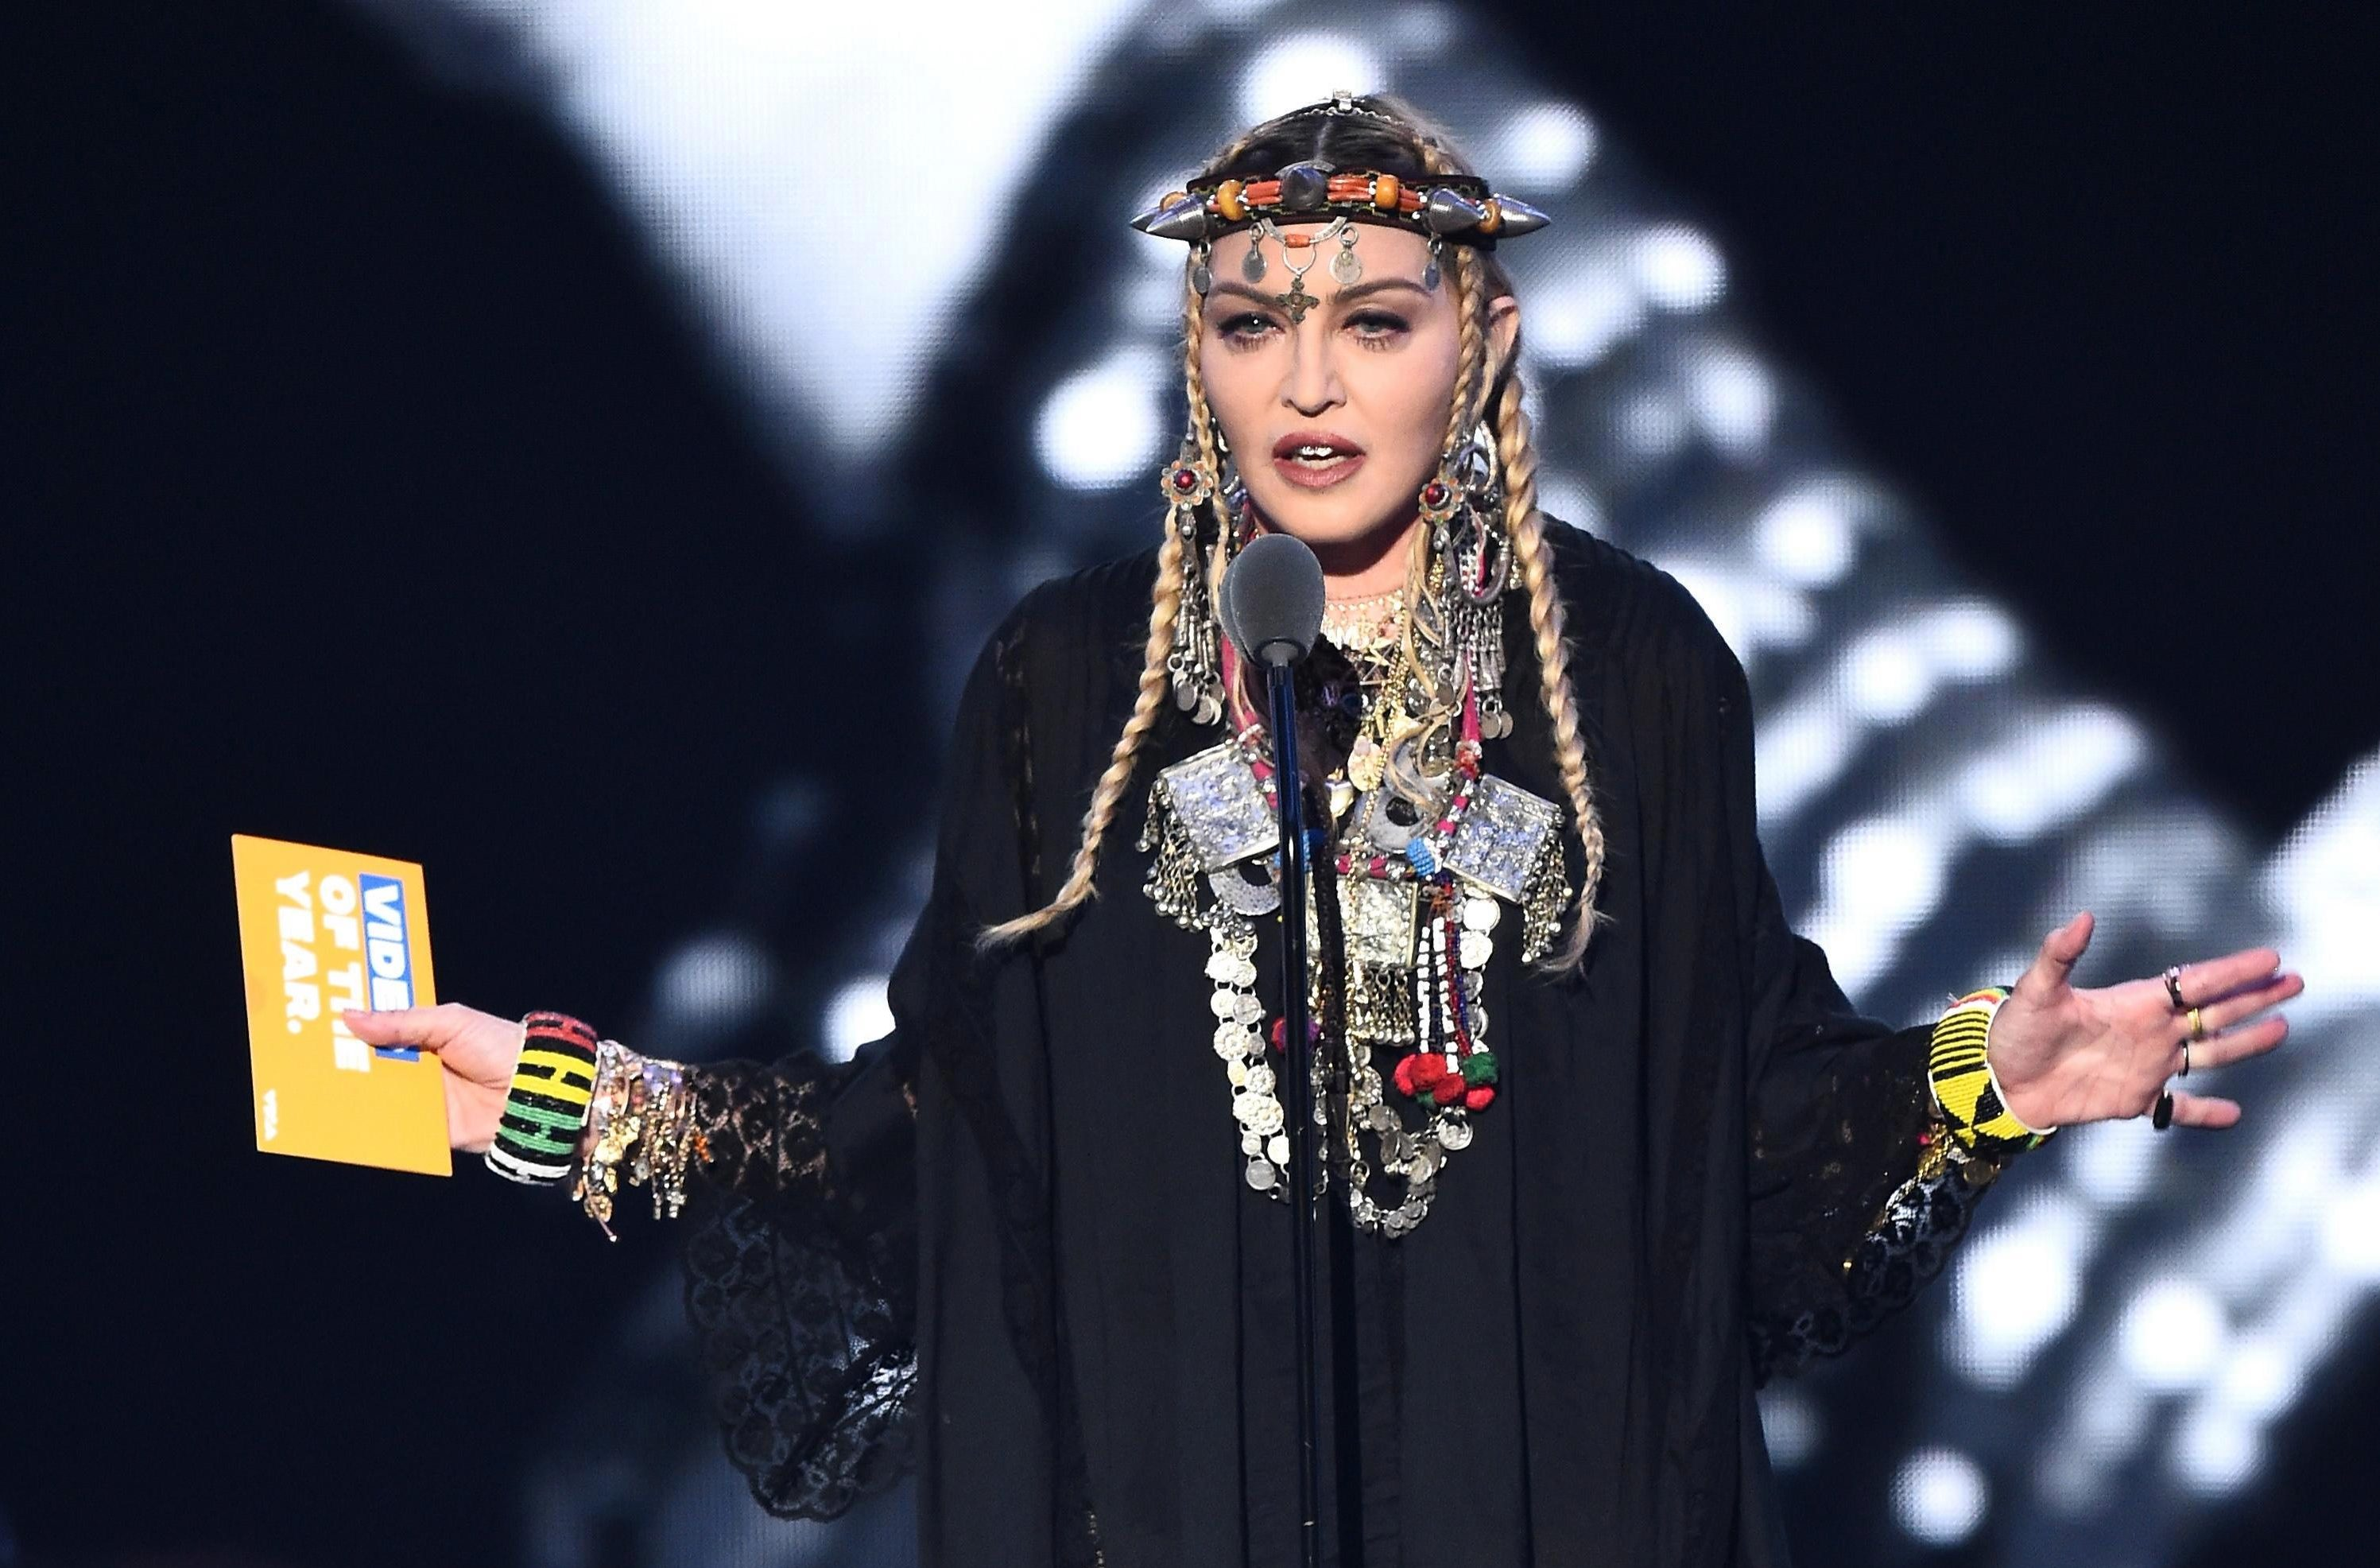 Madonna spoke about the ridicule of her figure 09.12.2009 64